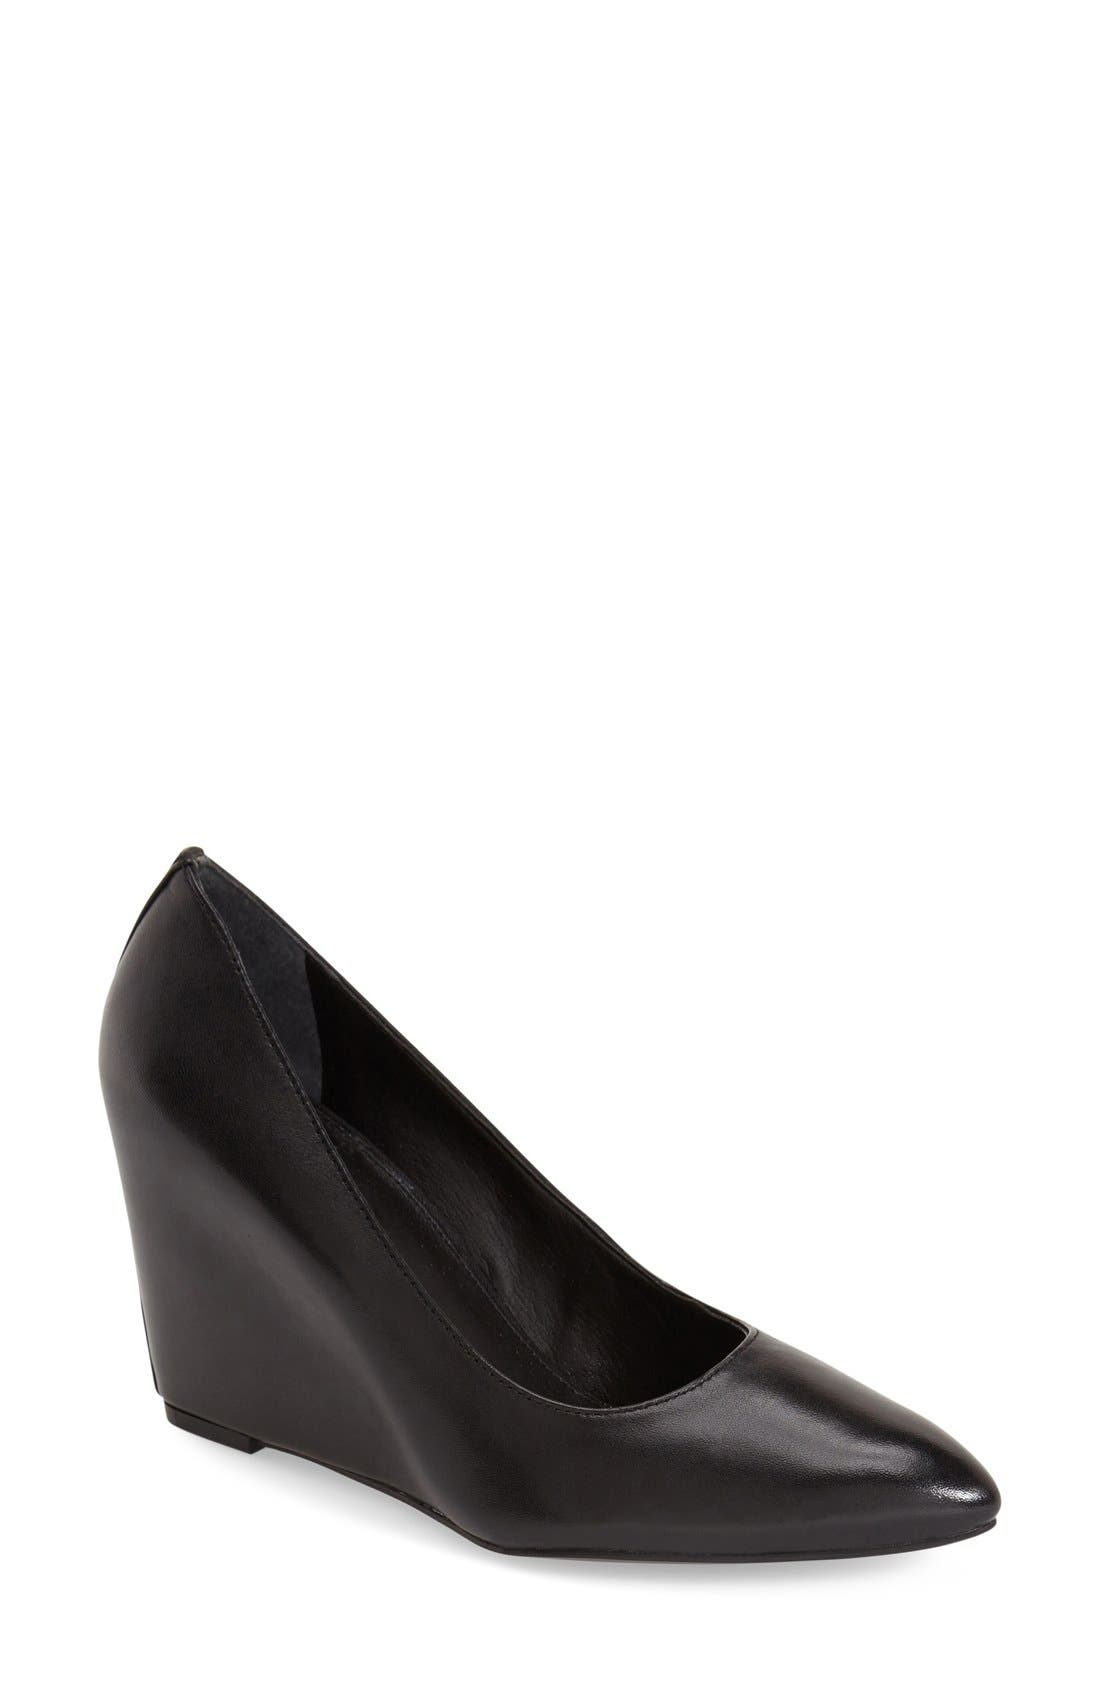 'Woodstock' Wedge Pump,                         Main,                         color, Black Leather